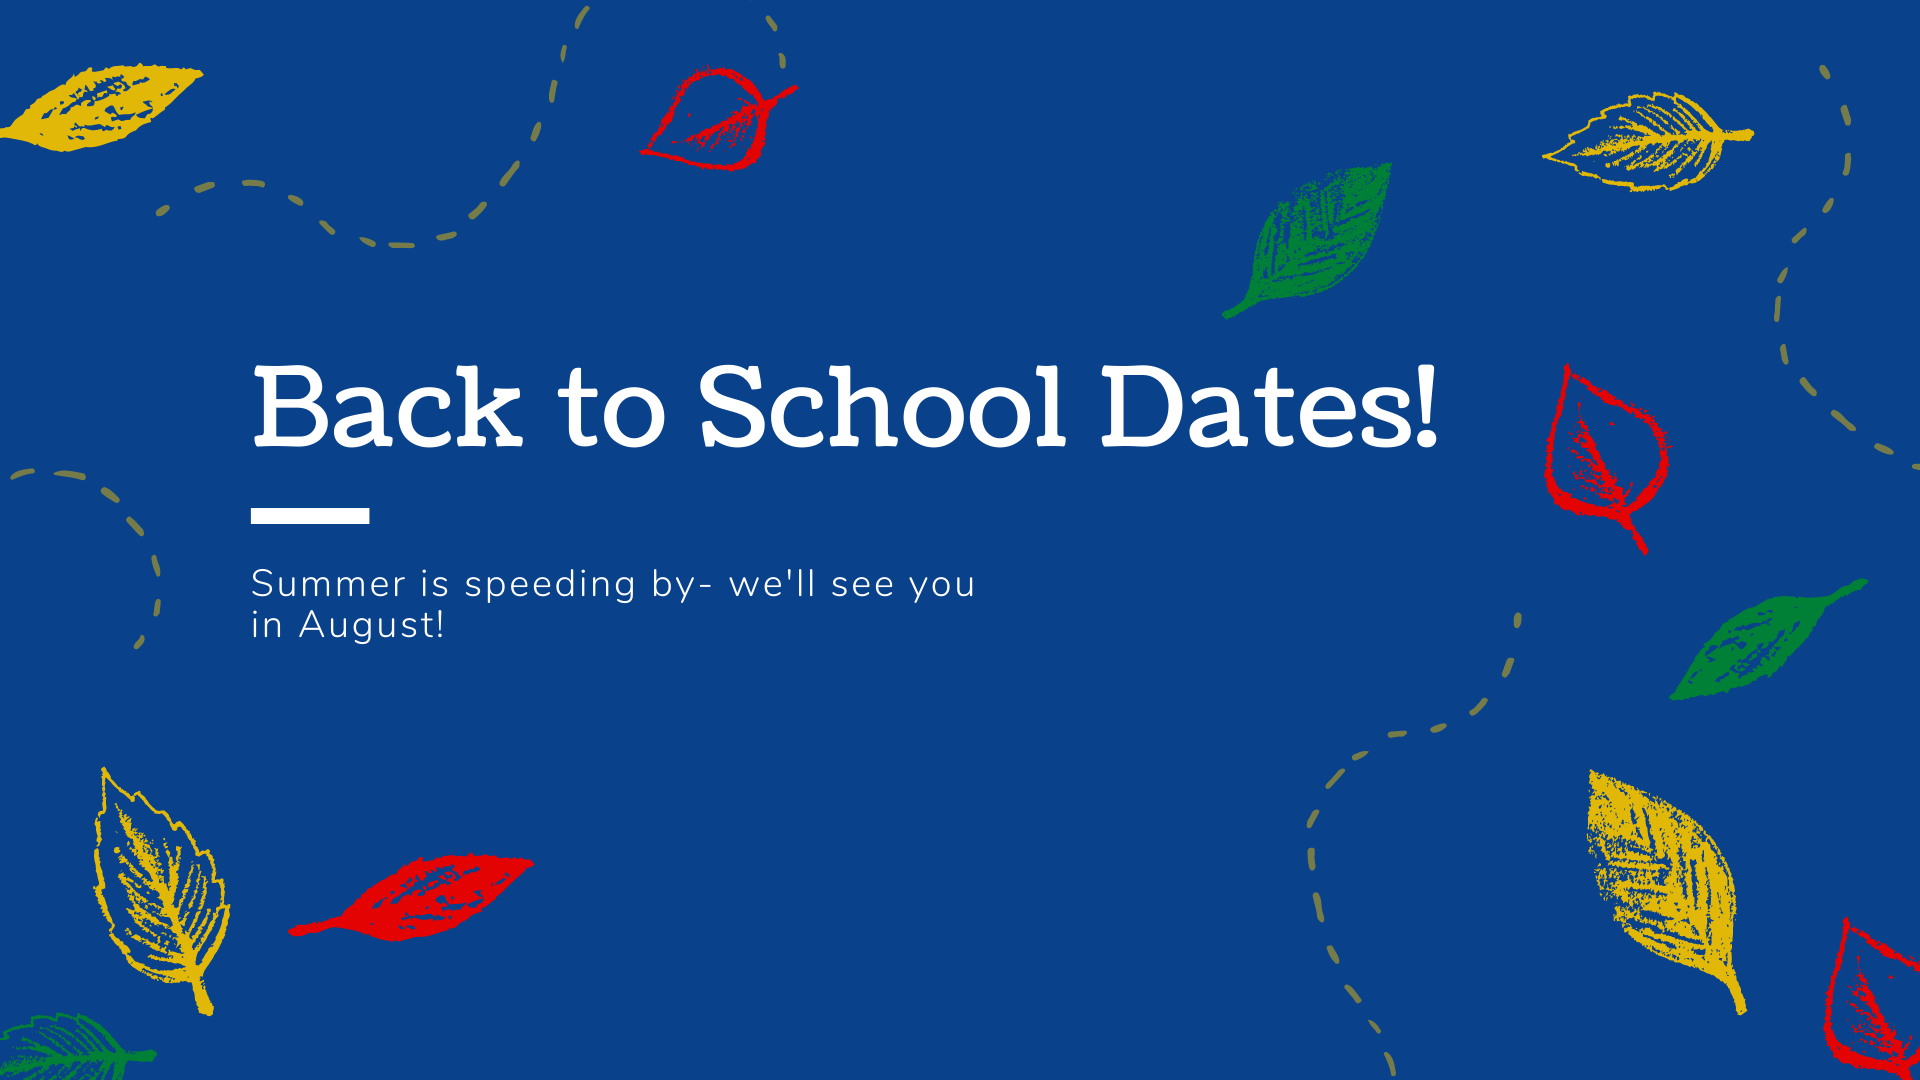 August back to school dates